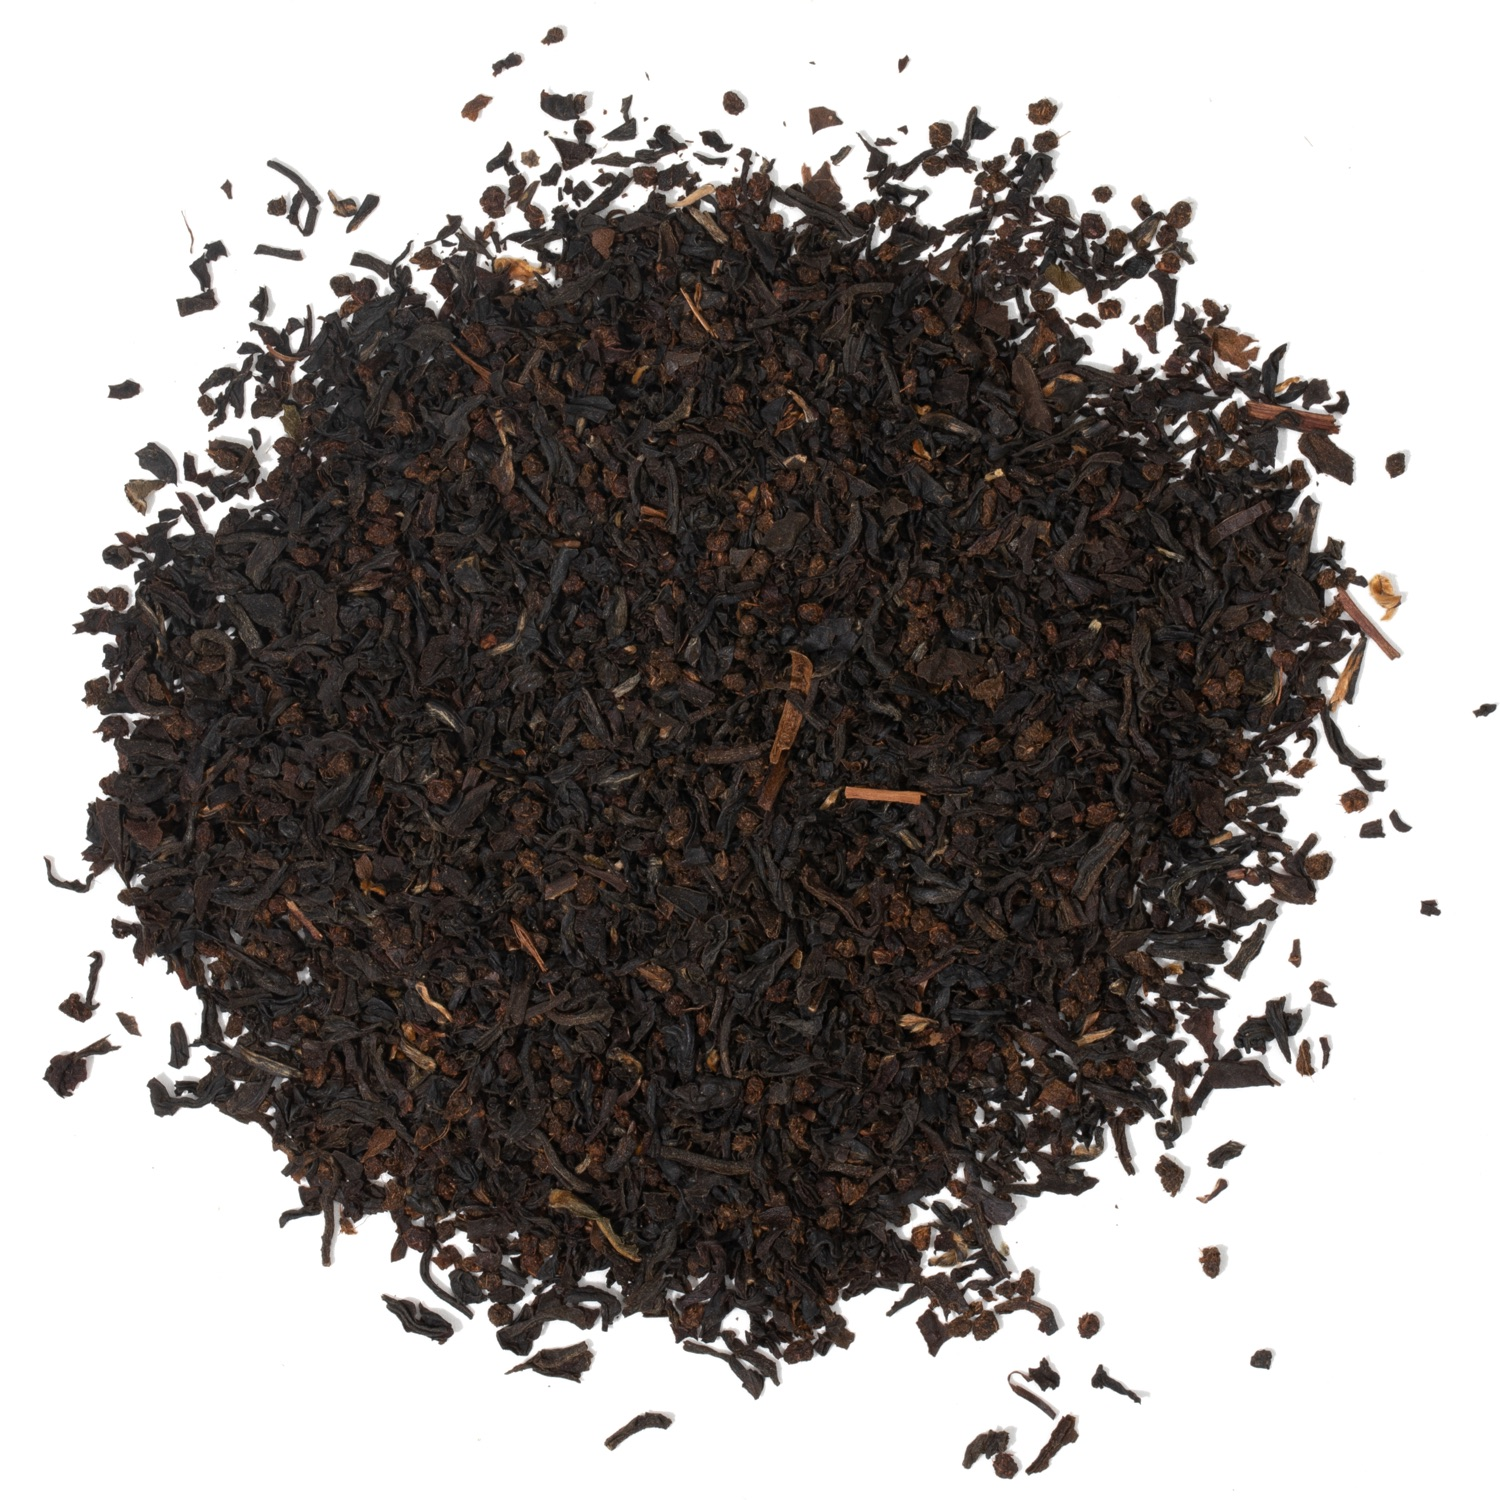 Splash of loose leaf black tea.